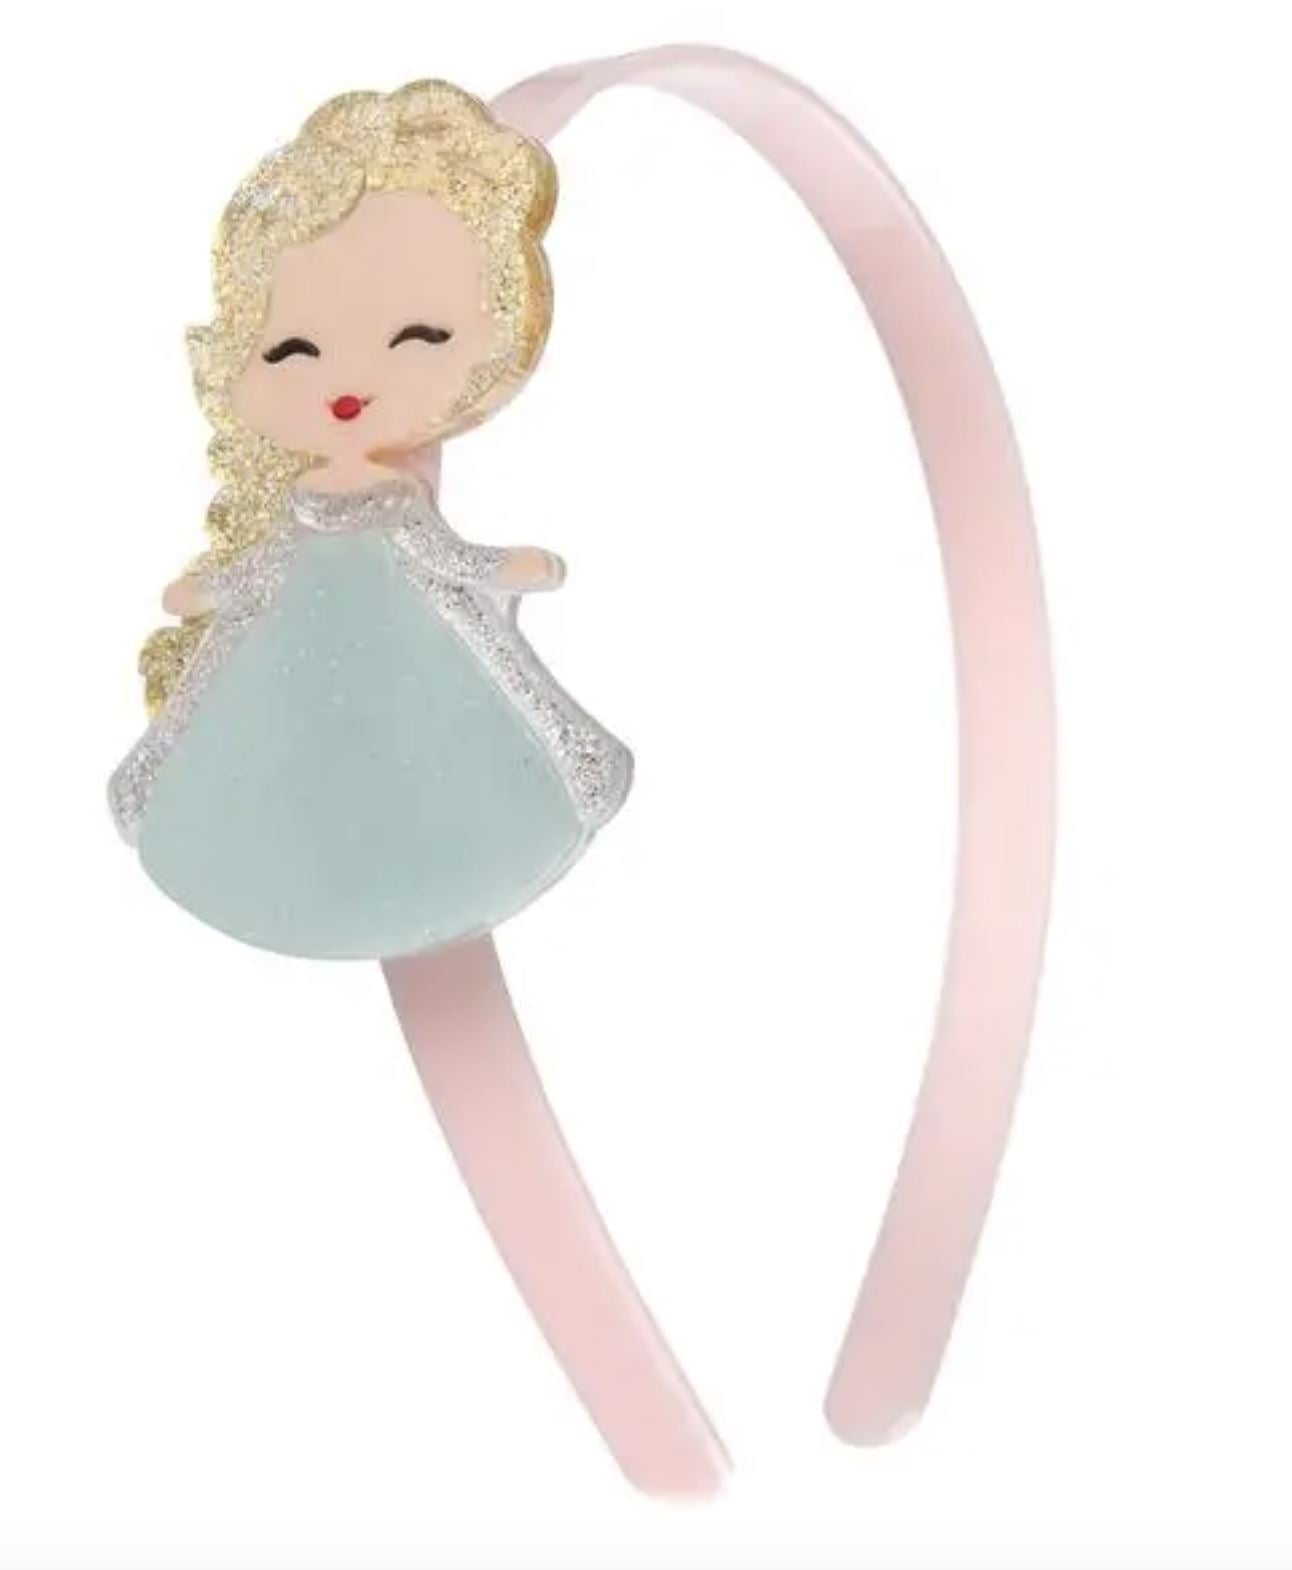 Princess Acrylic Headbands SNAP-Something New And Pretty